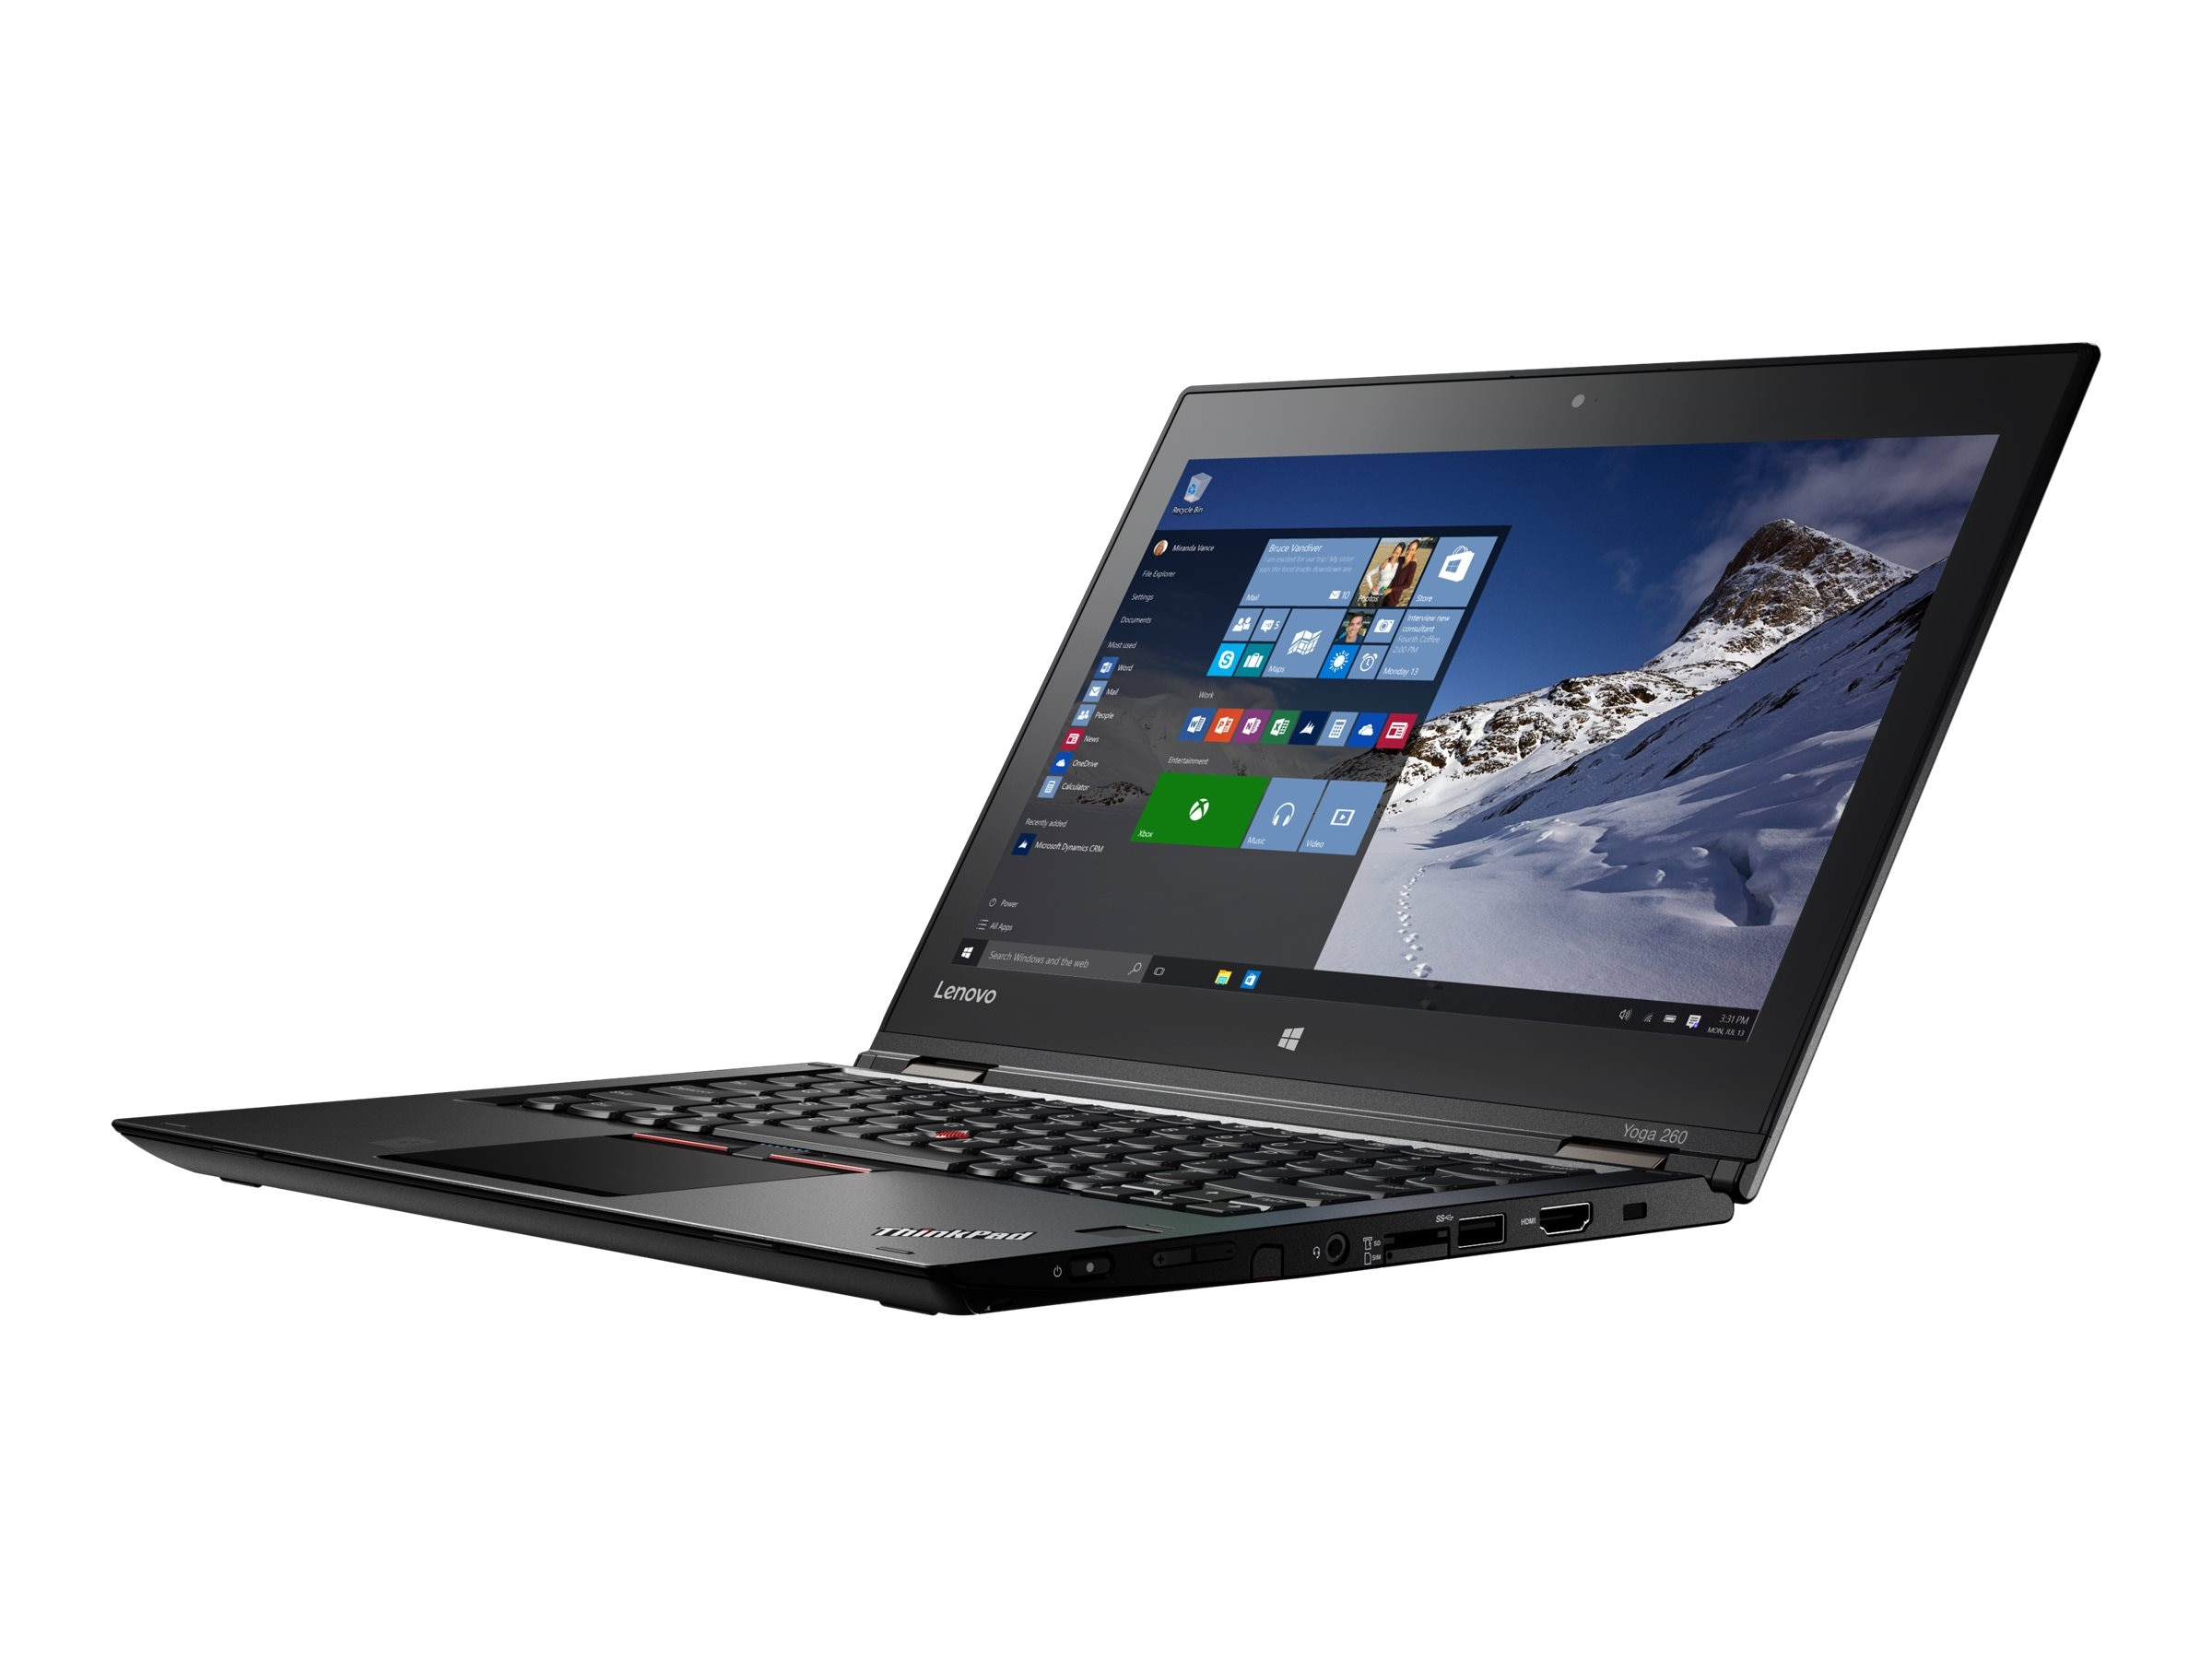 Lenovo TopSeller ThinkPad Yoga 260 Core i5-6200 2.3GHz 8GB 256GB OPAL2 ac BT FR WC 4C 12.5 FHD MT W10P64, 20FD0004US, 30818153, Notebooks - Convertible